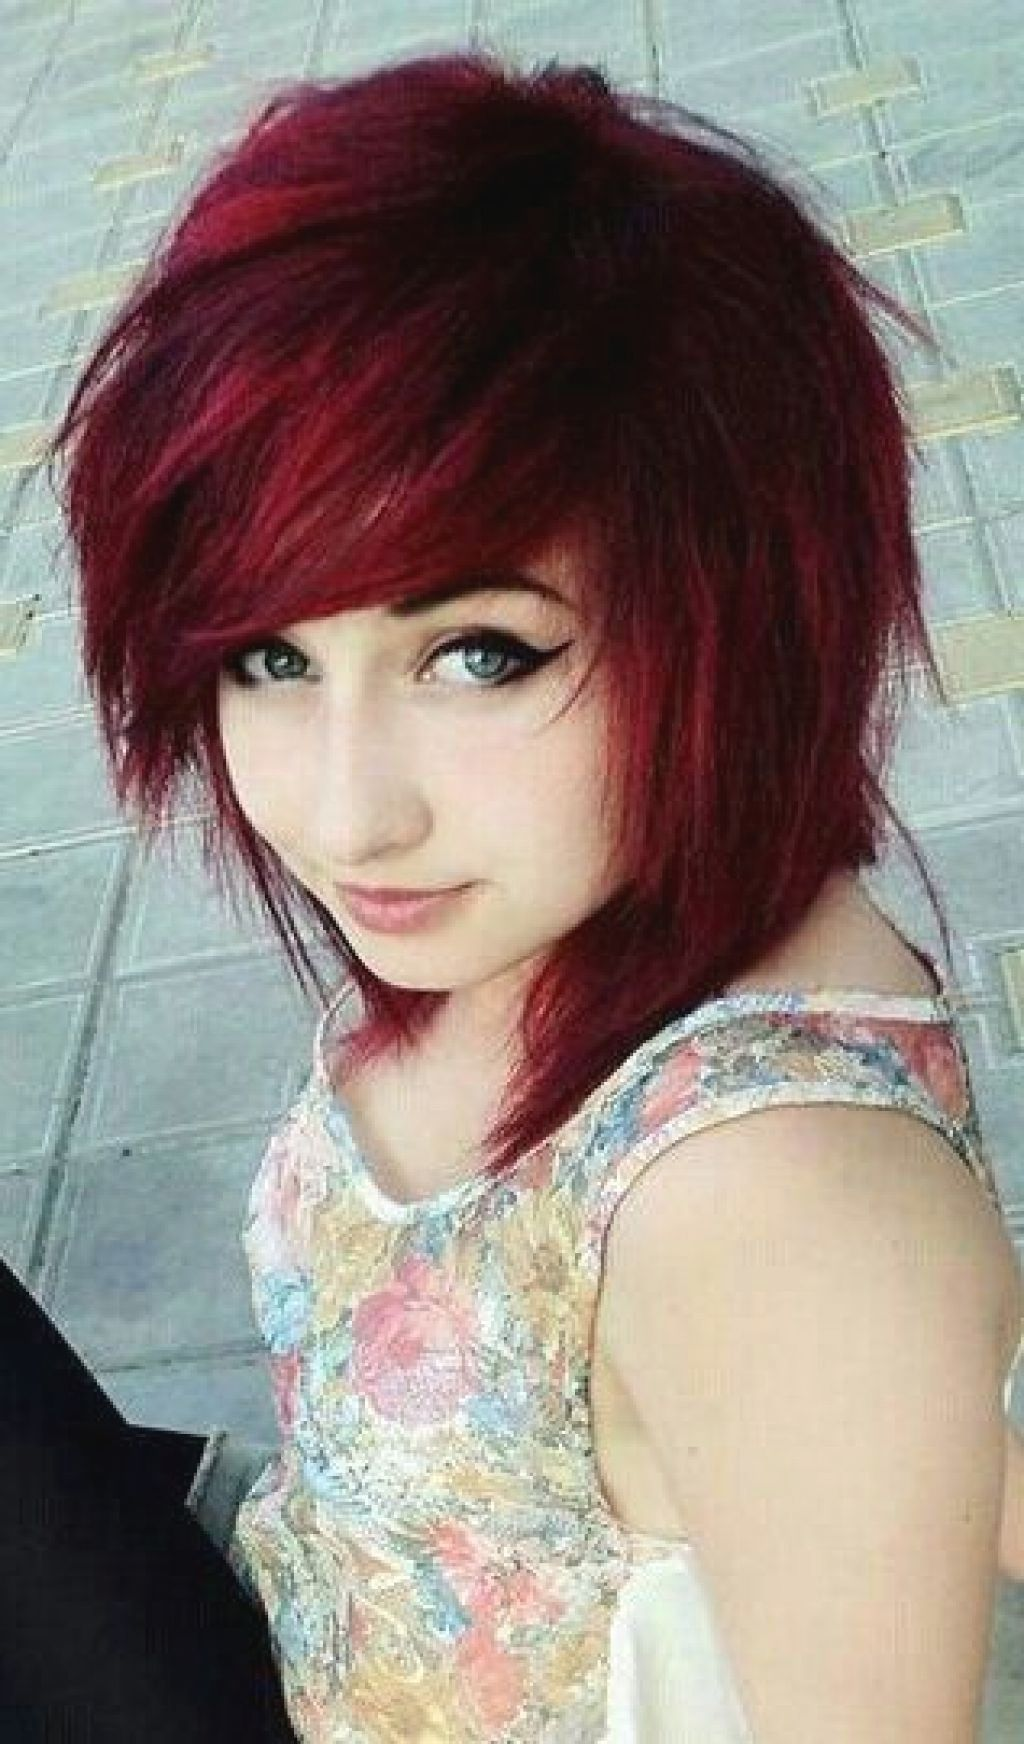 12 + Emo Hairstyles For Short Hair - Hairstyles 12  Emo girl